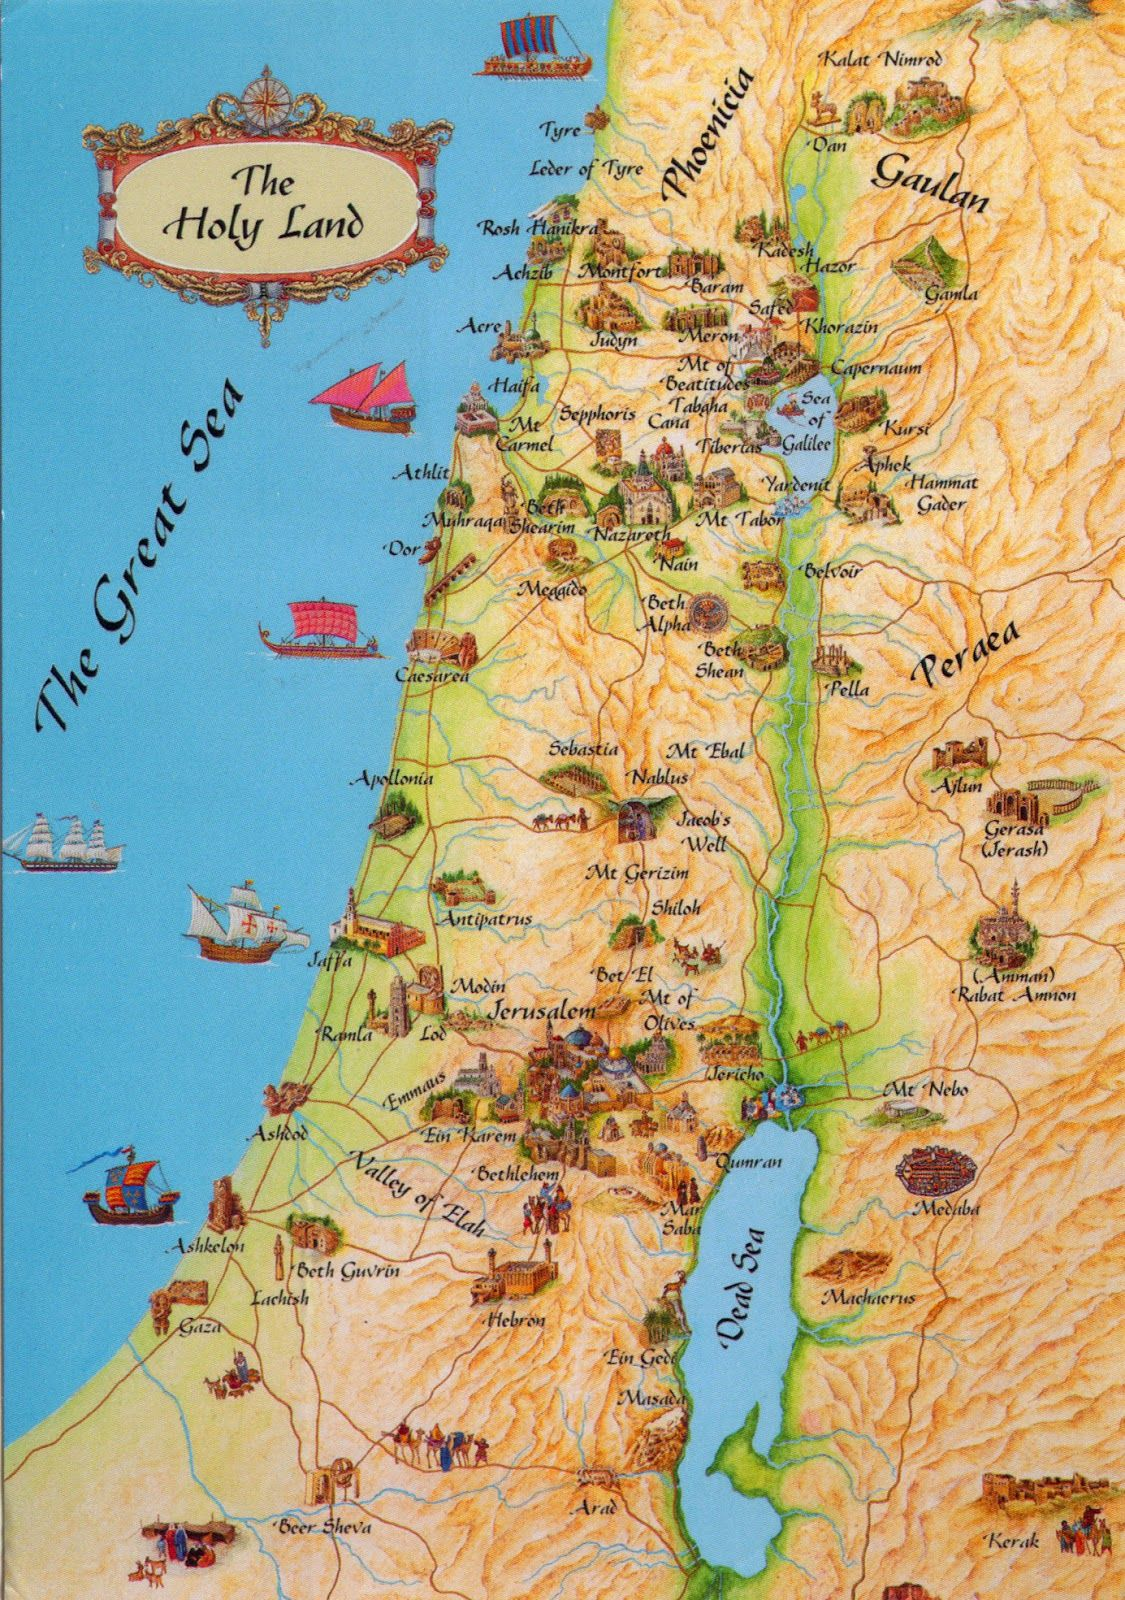 Map of biblical israel world come to my home 0315 israel the map of biblical israel world come to my home 0315 israel the map of the holy land gumiabroncs Choice Image